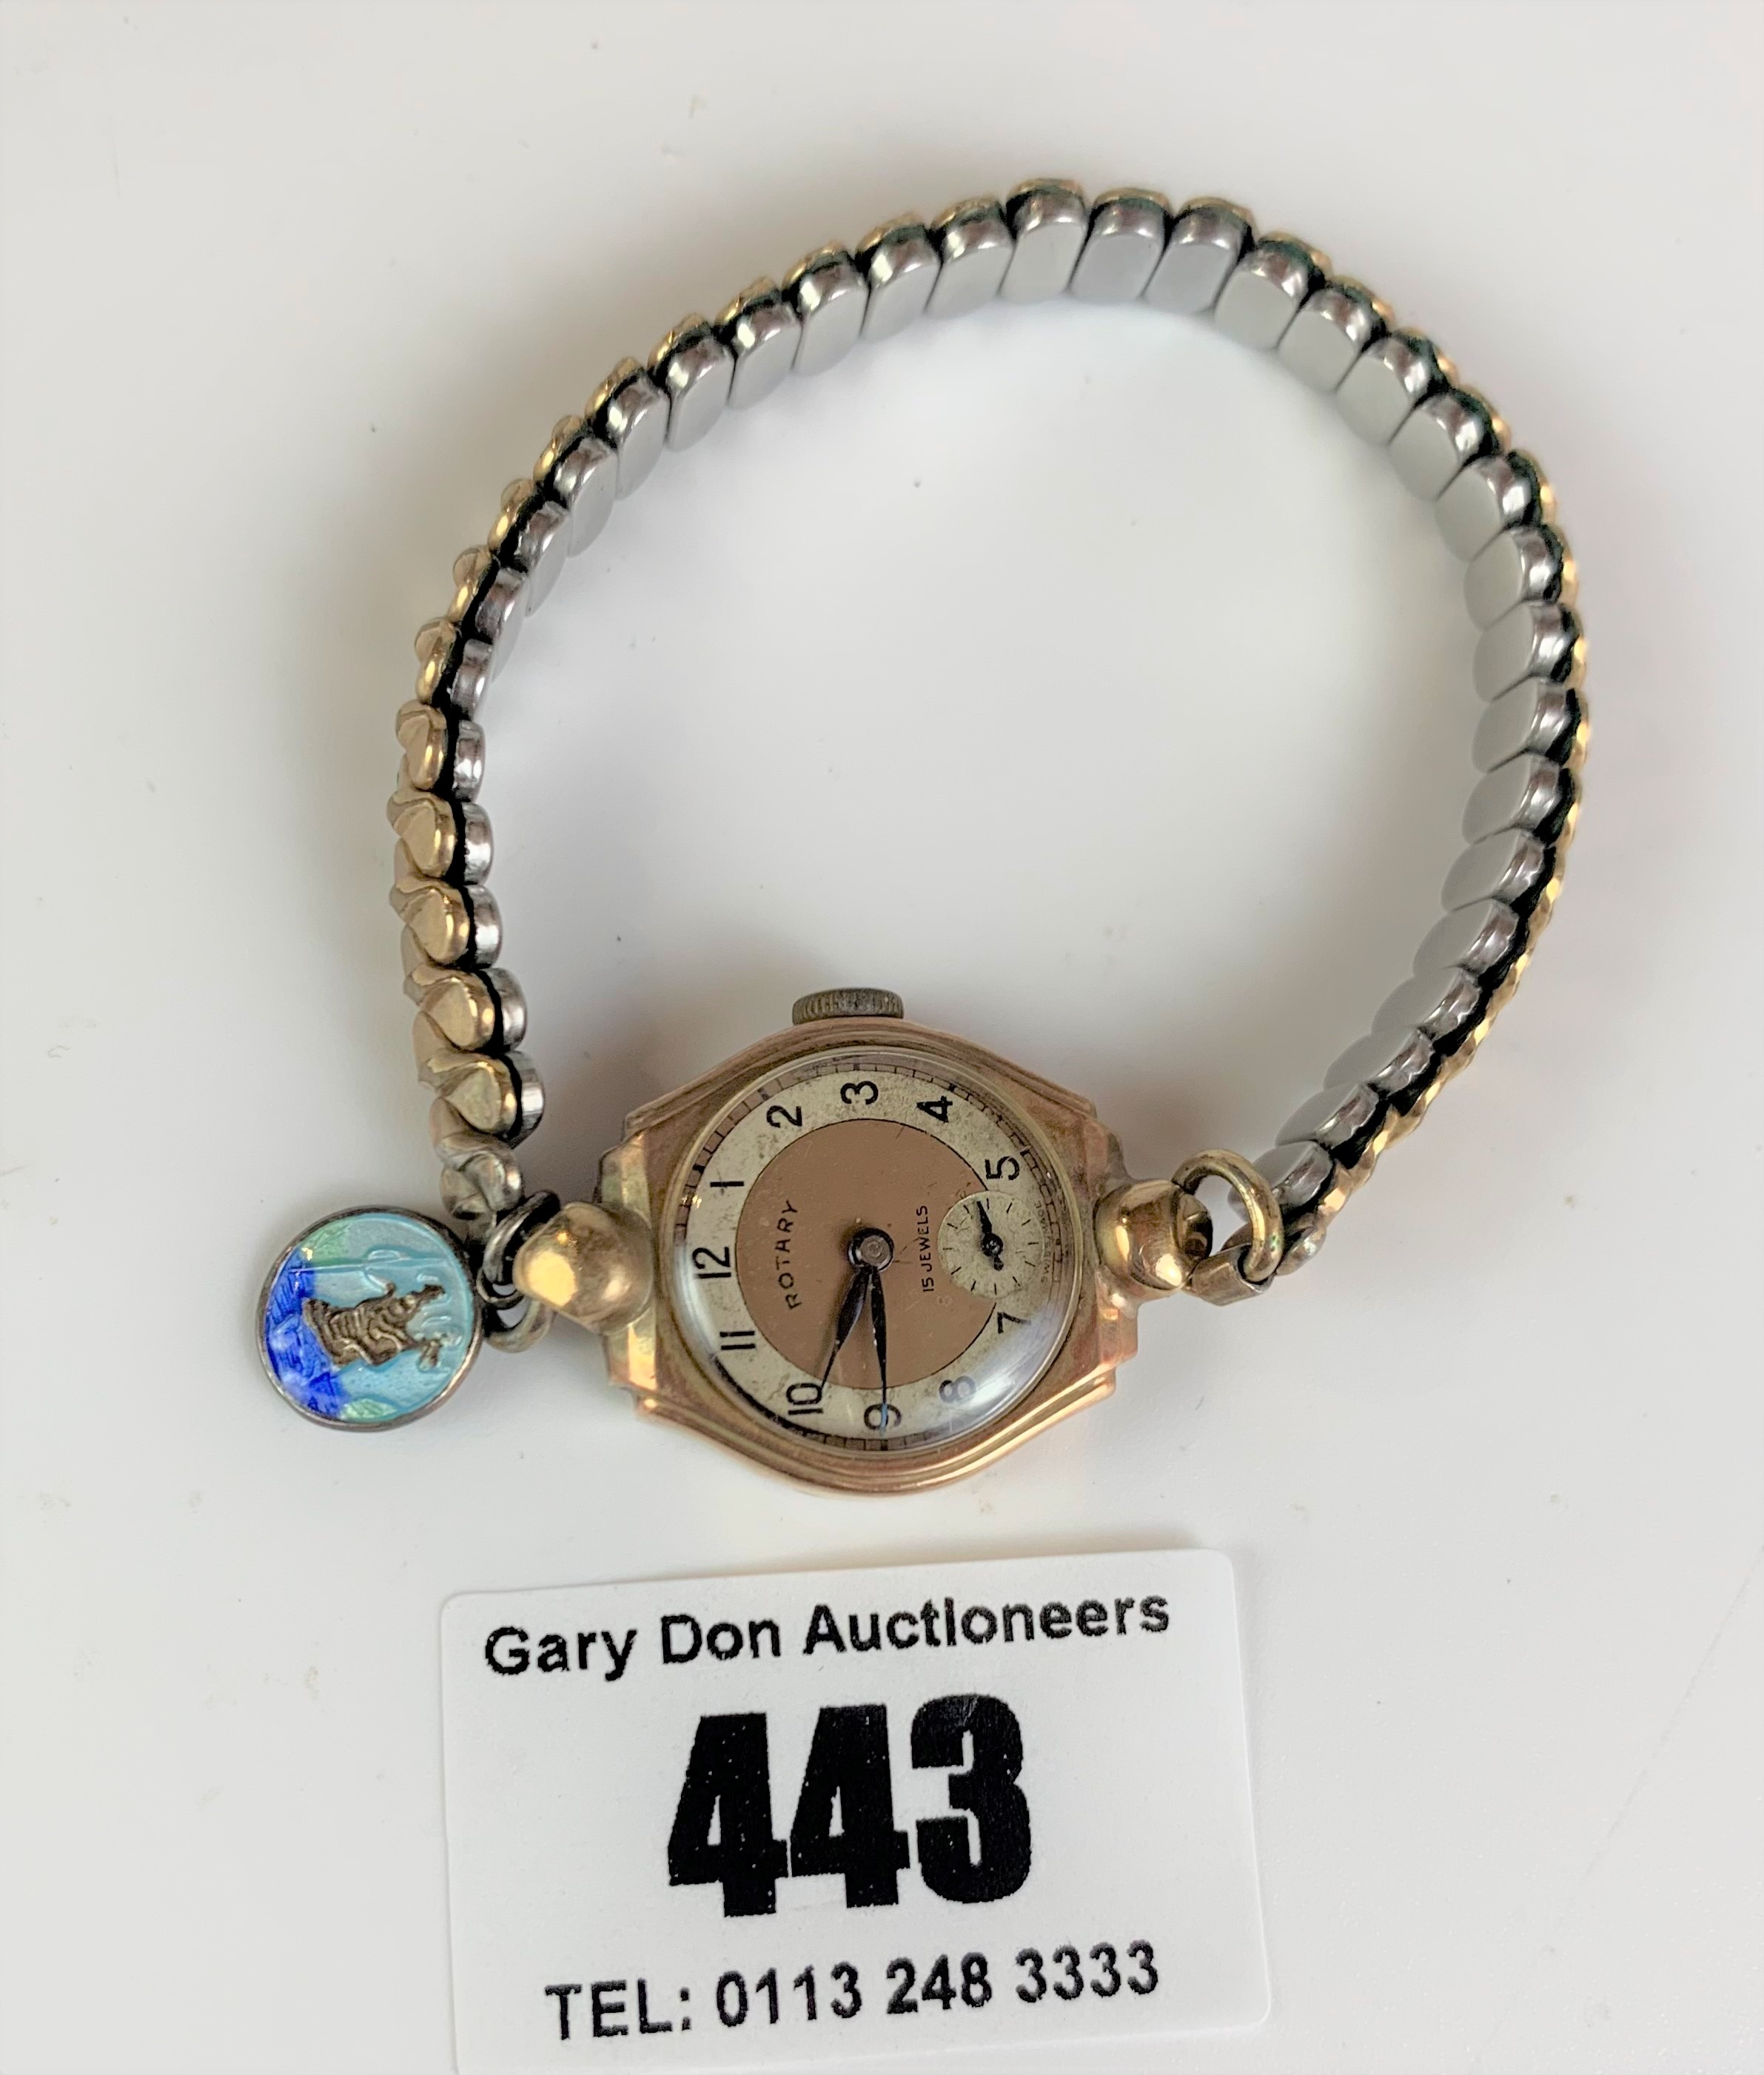 9k gold ladies Rotary watch with plated elasticated strap. Winder turns but not running